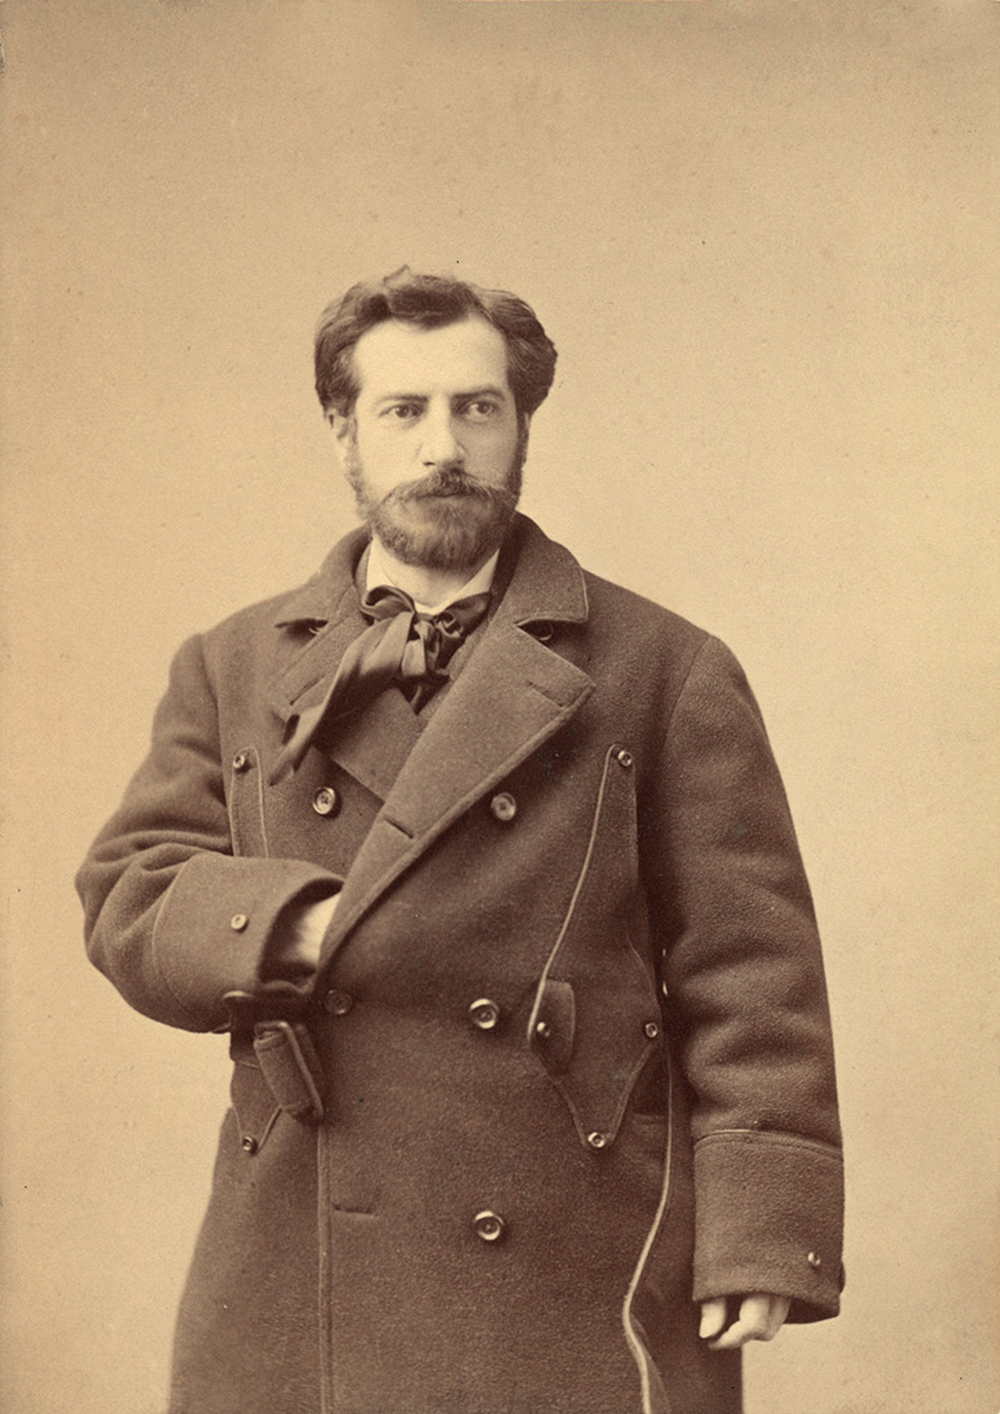 Frederic-Auguste Bartholdi in New York City, 1871. Photograph by Napoleon Sarony. Musée Bartholdi Colmar. Photograph © Christian Kempf.